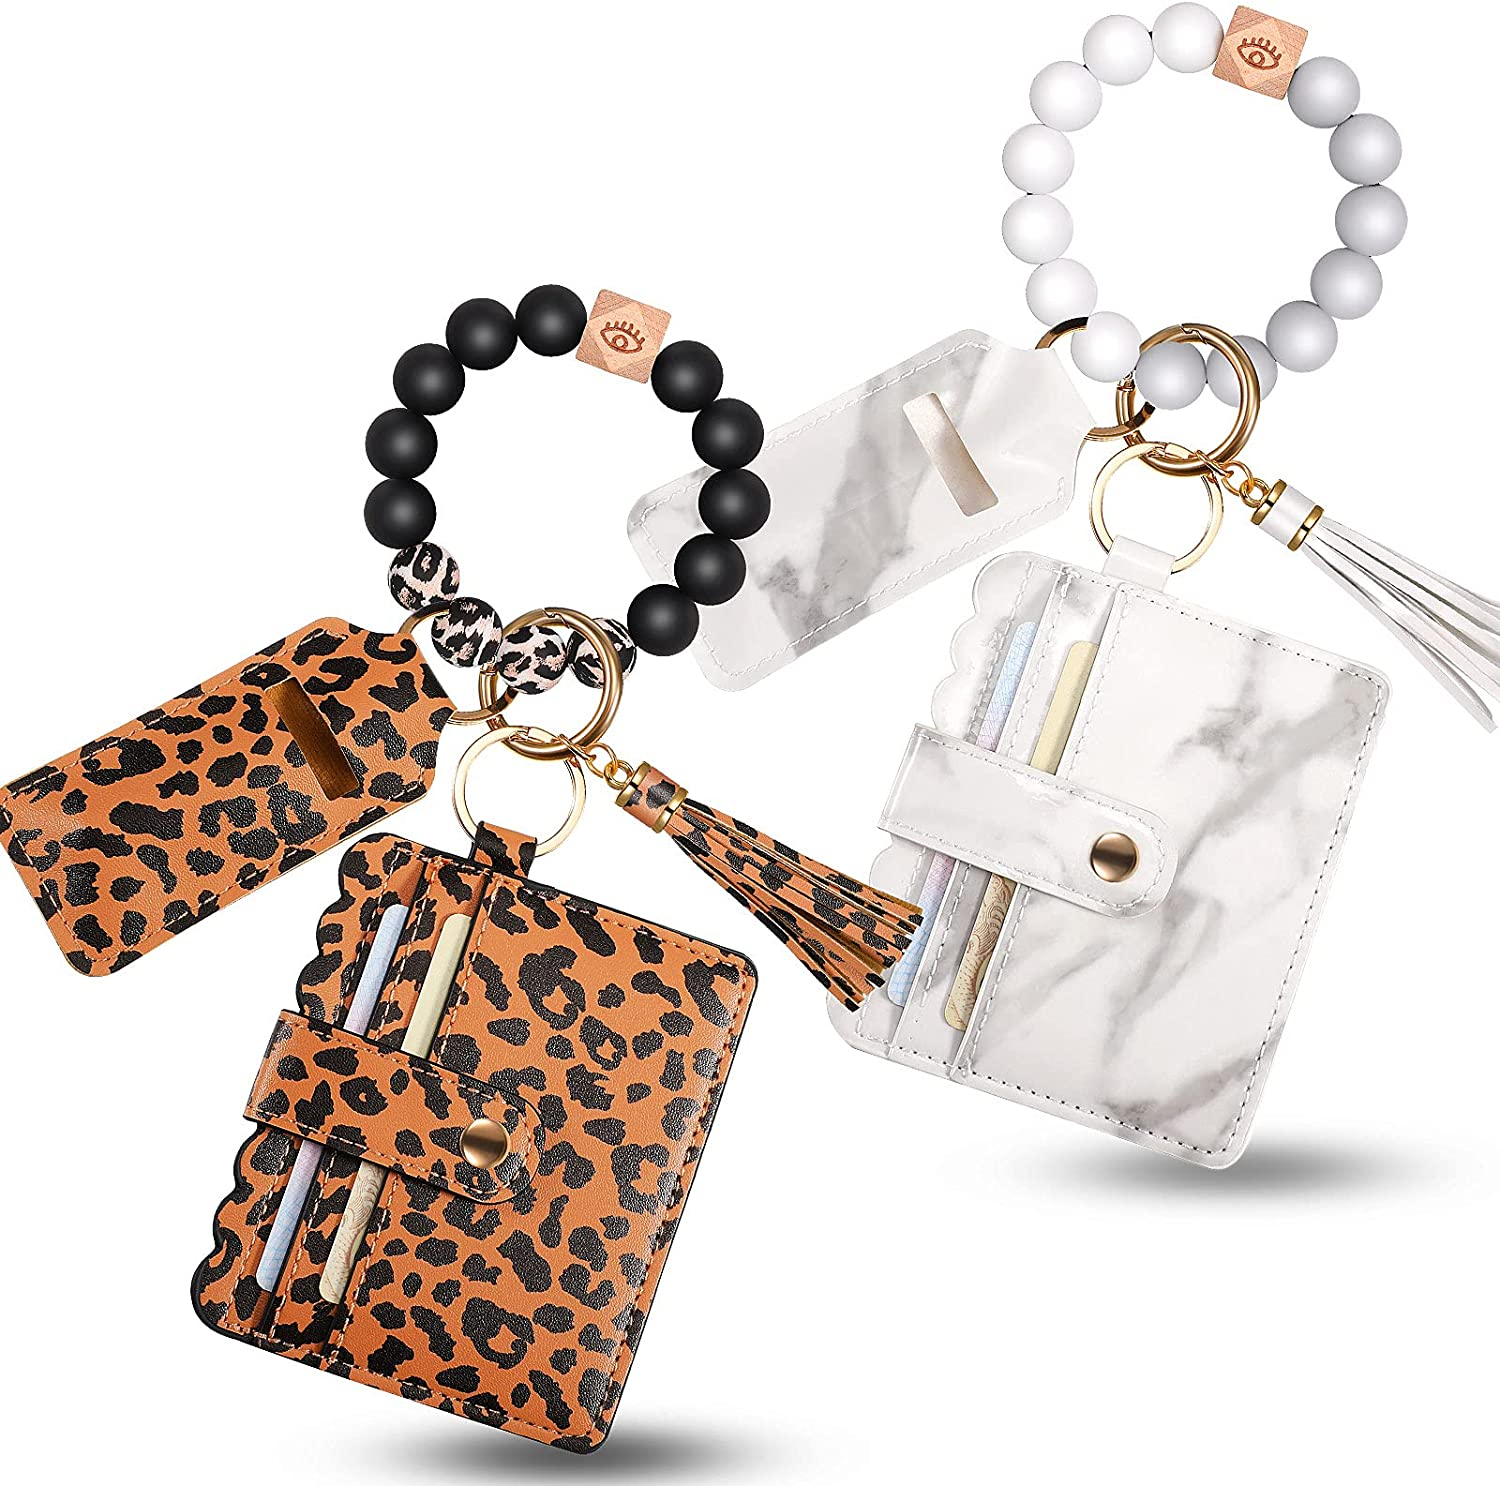 2 Pieces Wristlet Keychain Bracelet Wallet Holder Silicone Bead Keyring Bangle Key Ring Silicone Car Wallet Beaded Bangle Car Key Ring Card Holder with Card Faux Leather Tassel for Women and Girls